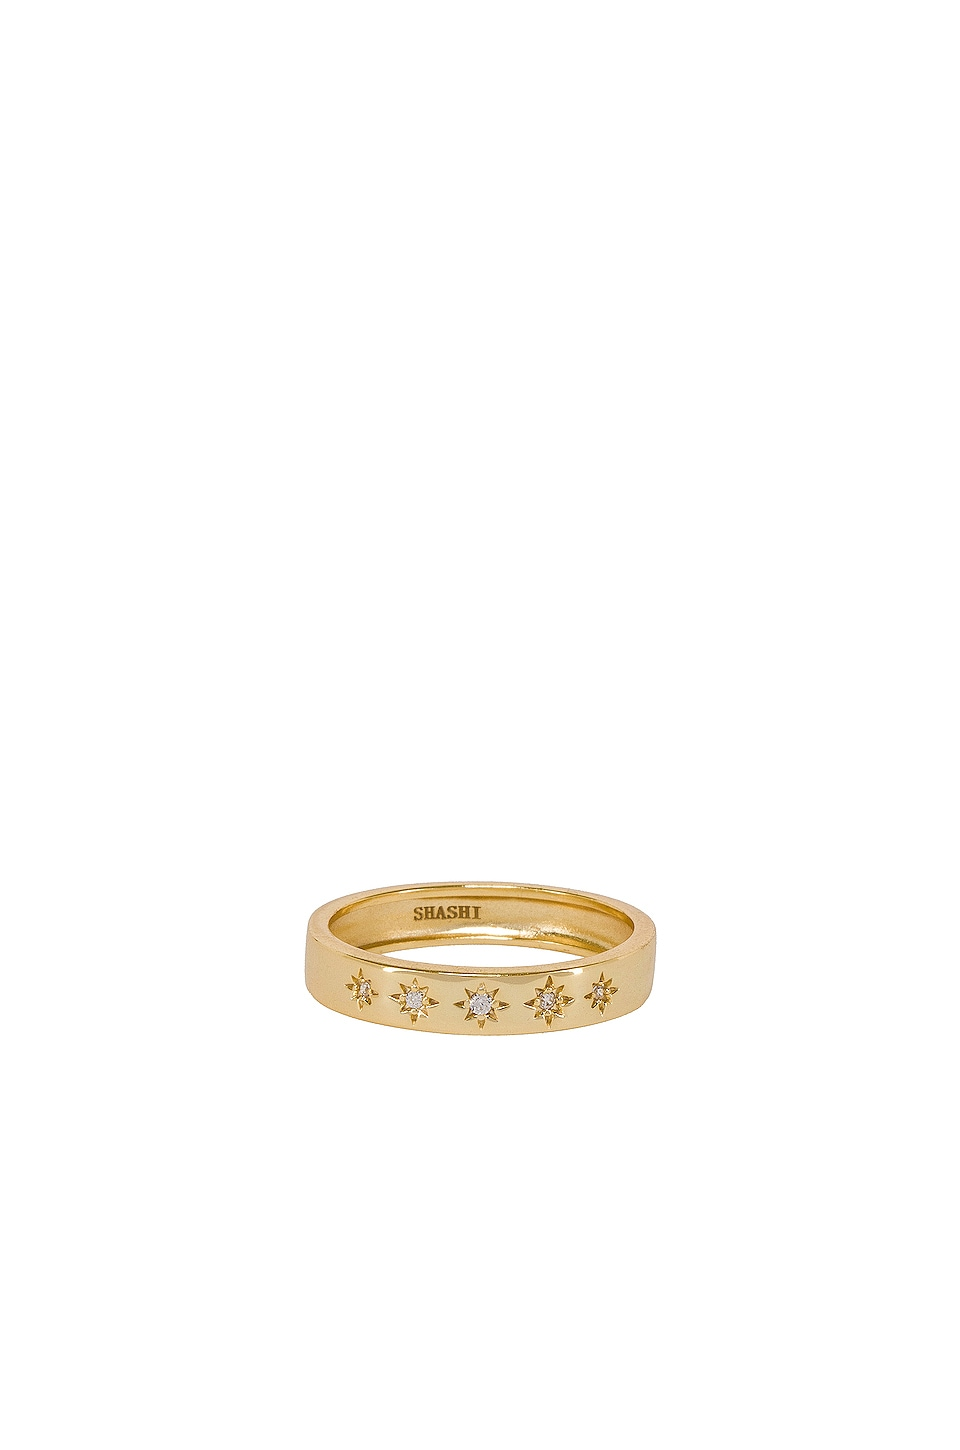 SHASHI Twinkle Band Ring in Gold